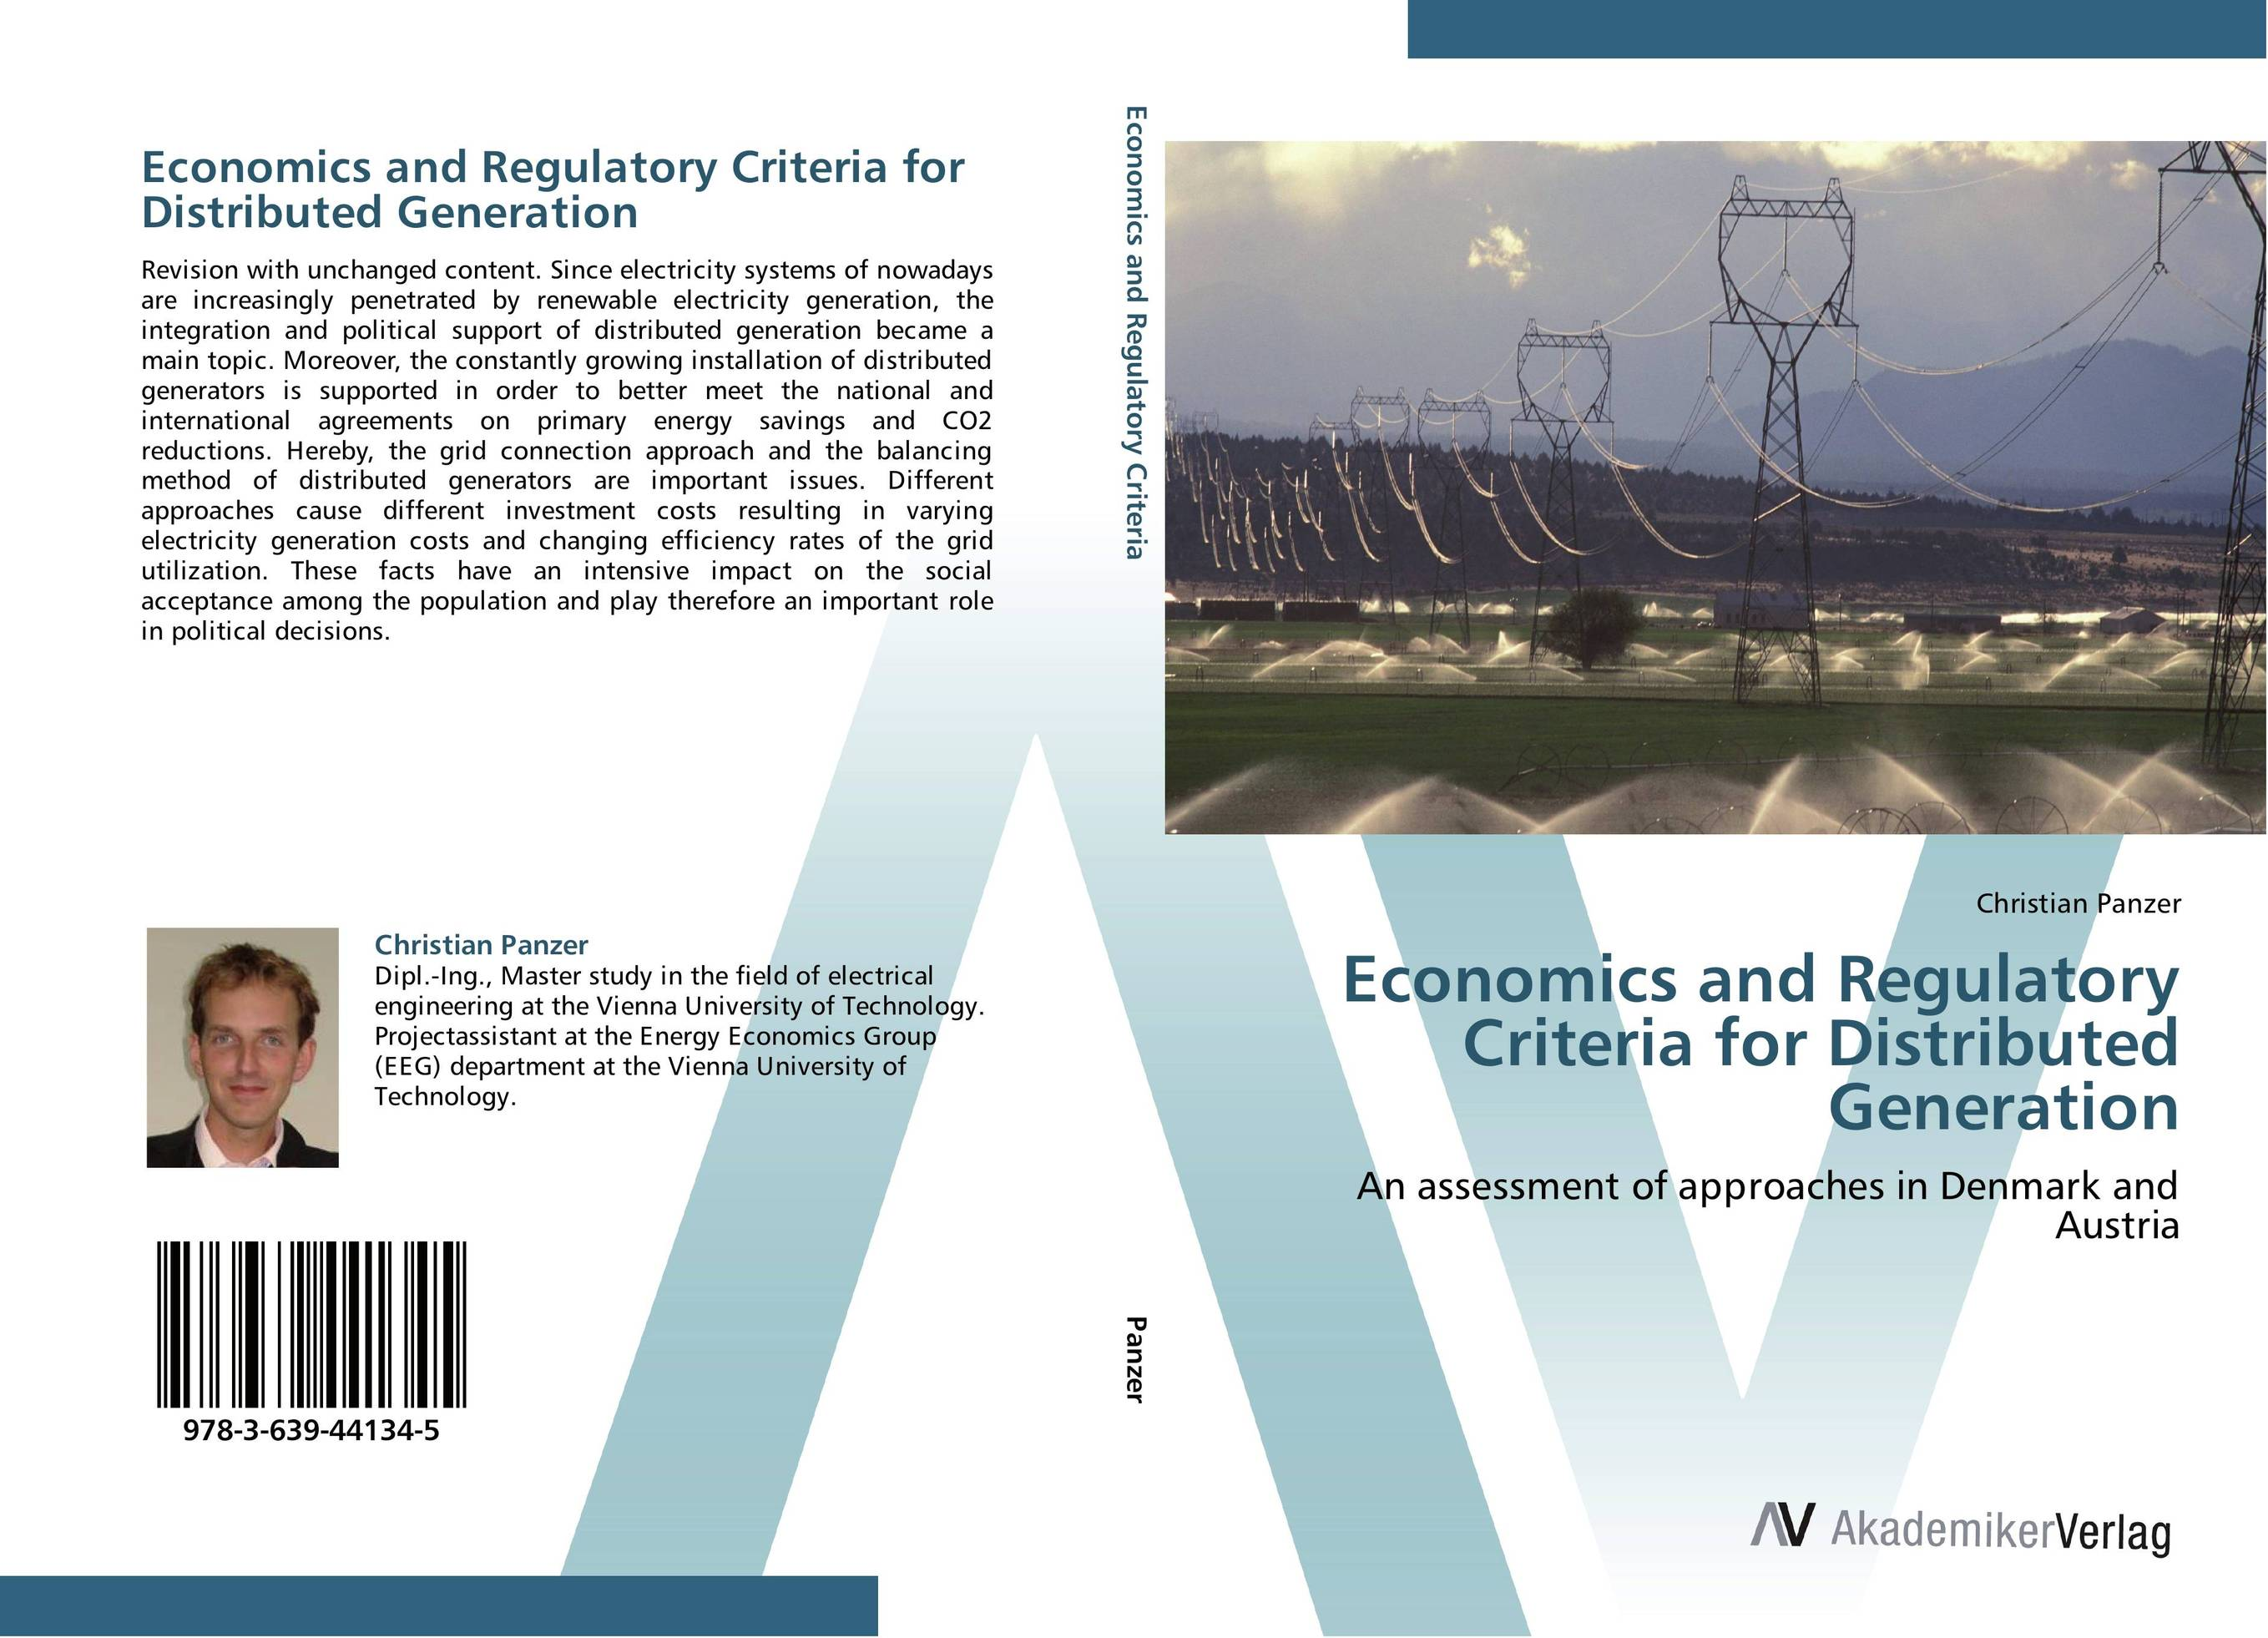 Economics and Regulatory Criteria for Distributed Generation handbook of international economics 3